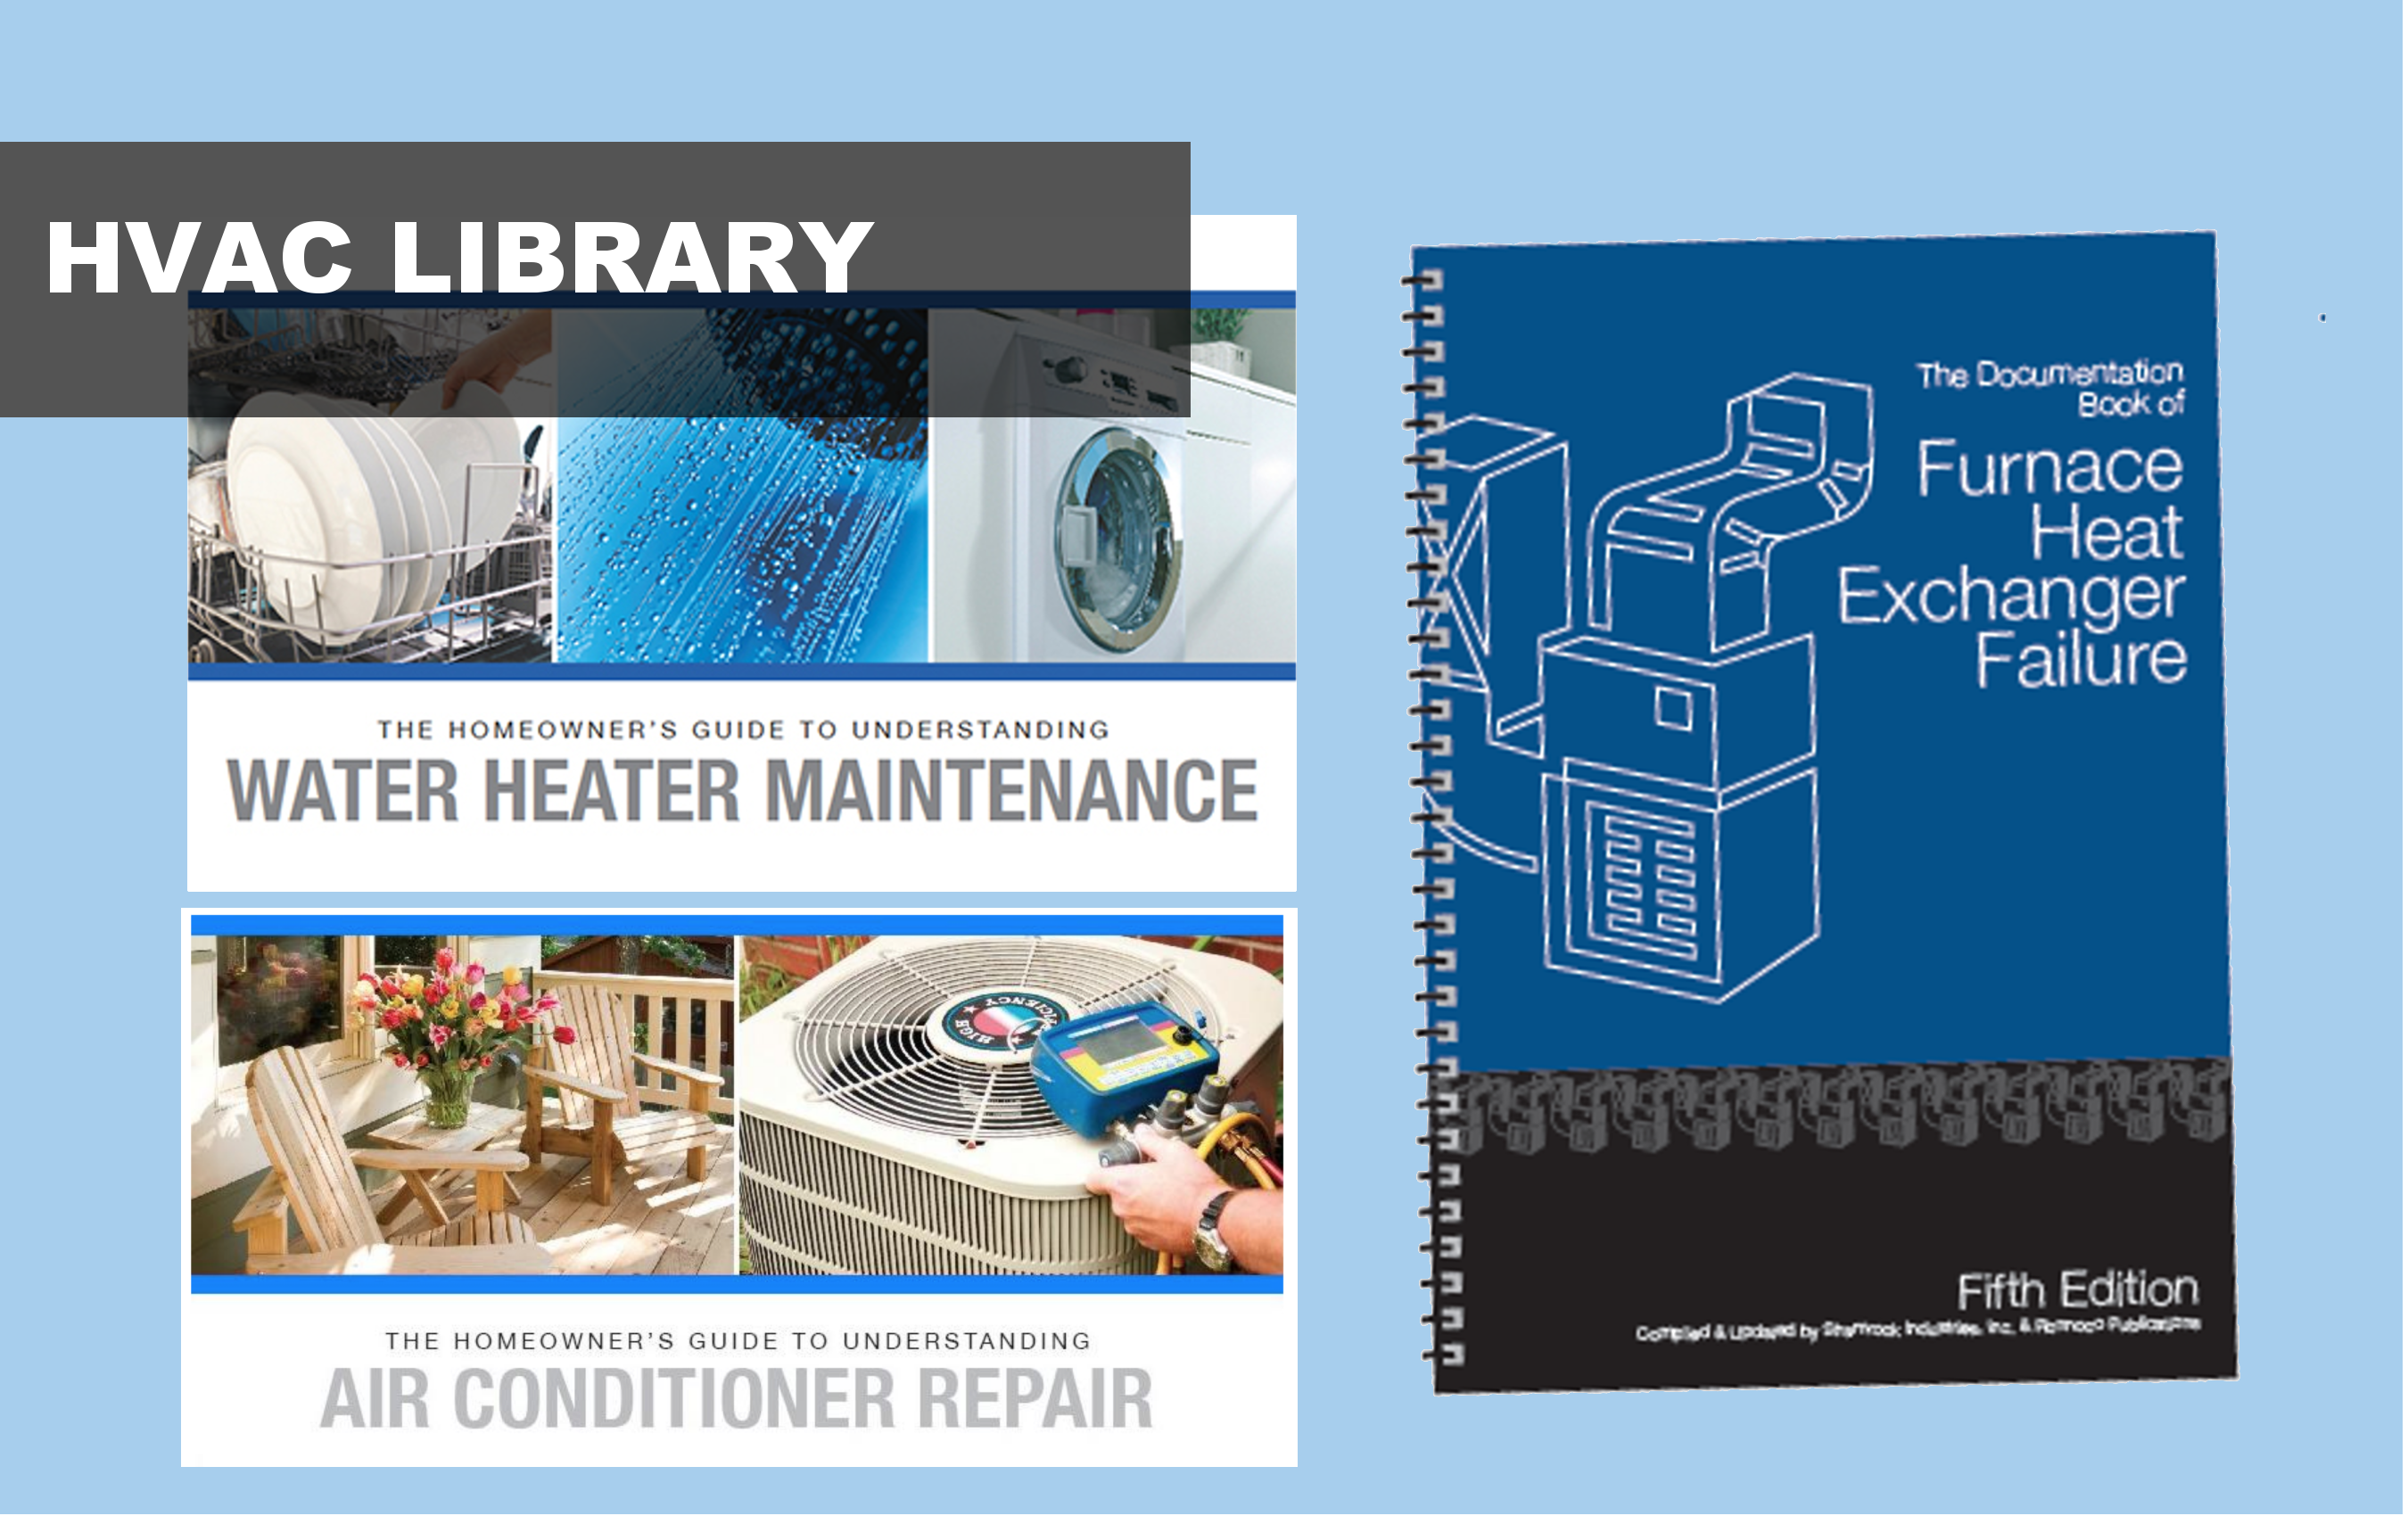 Hvac library archives the inspector camera solutioingenieria Image collections